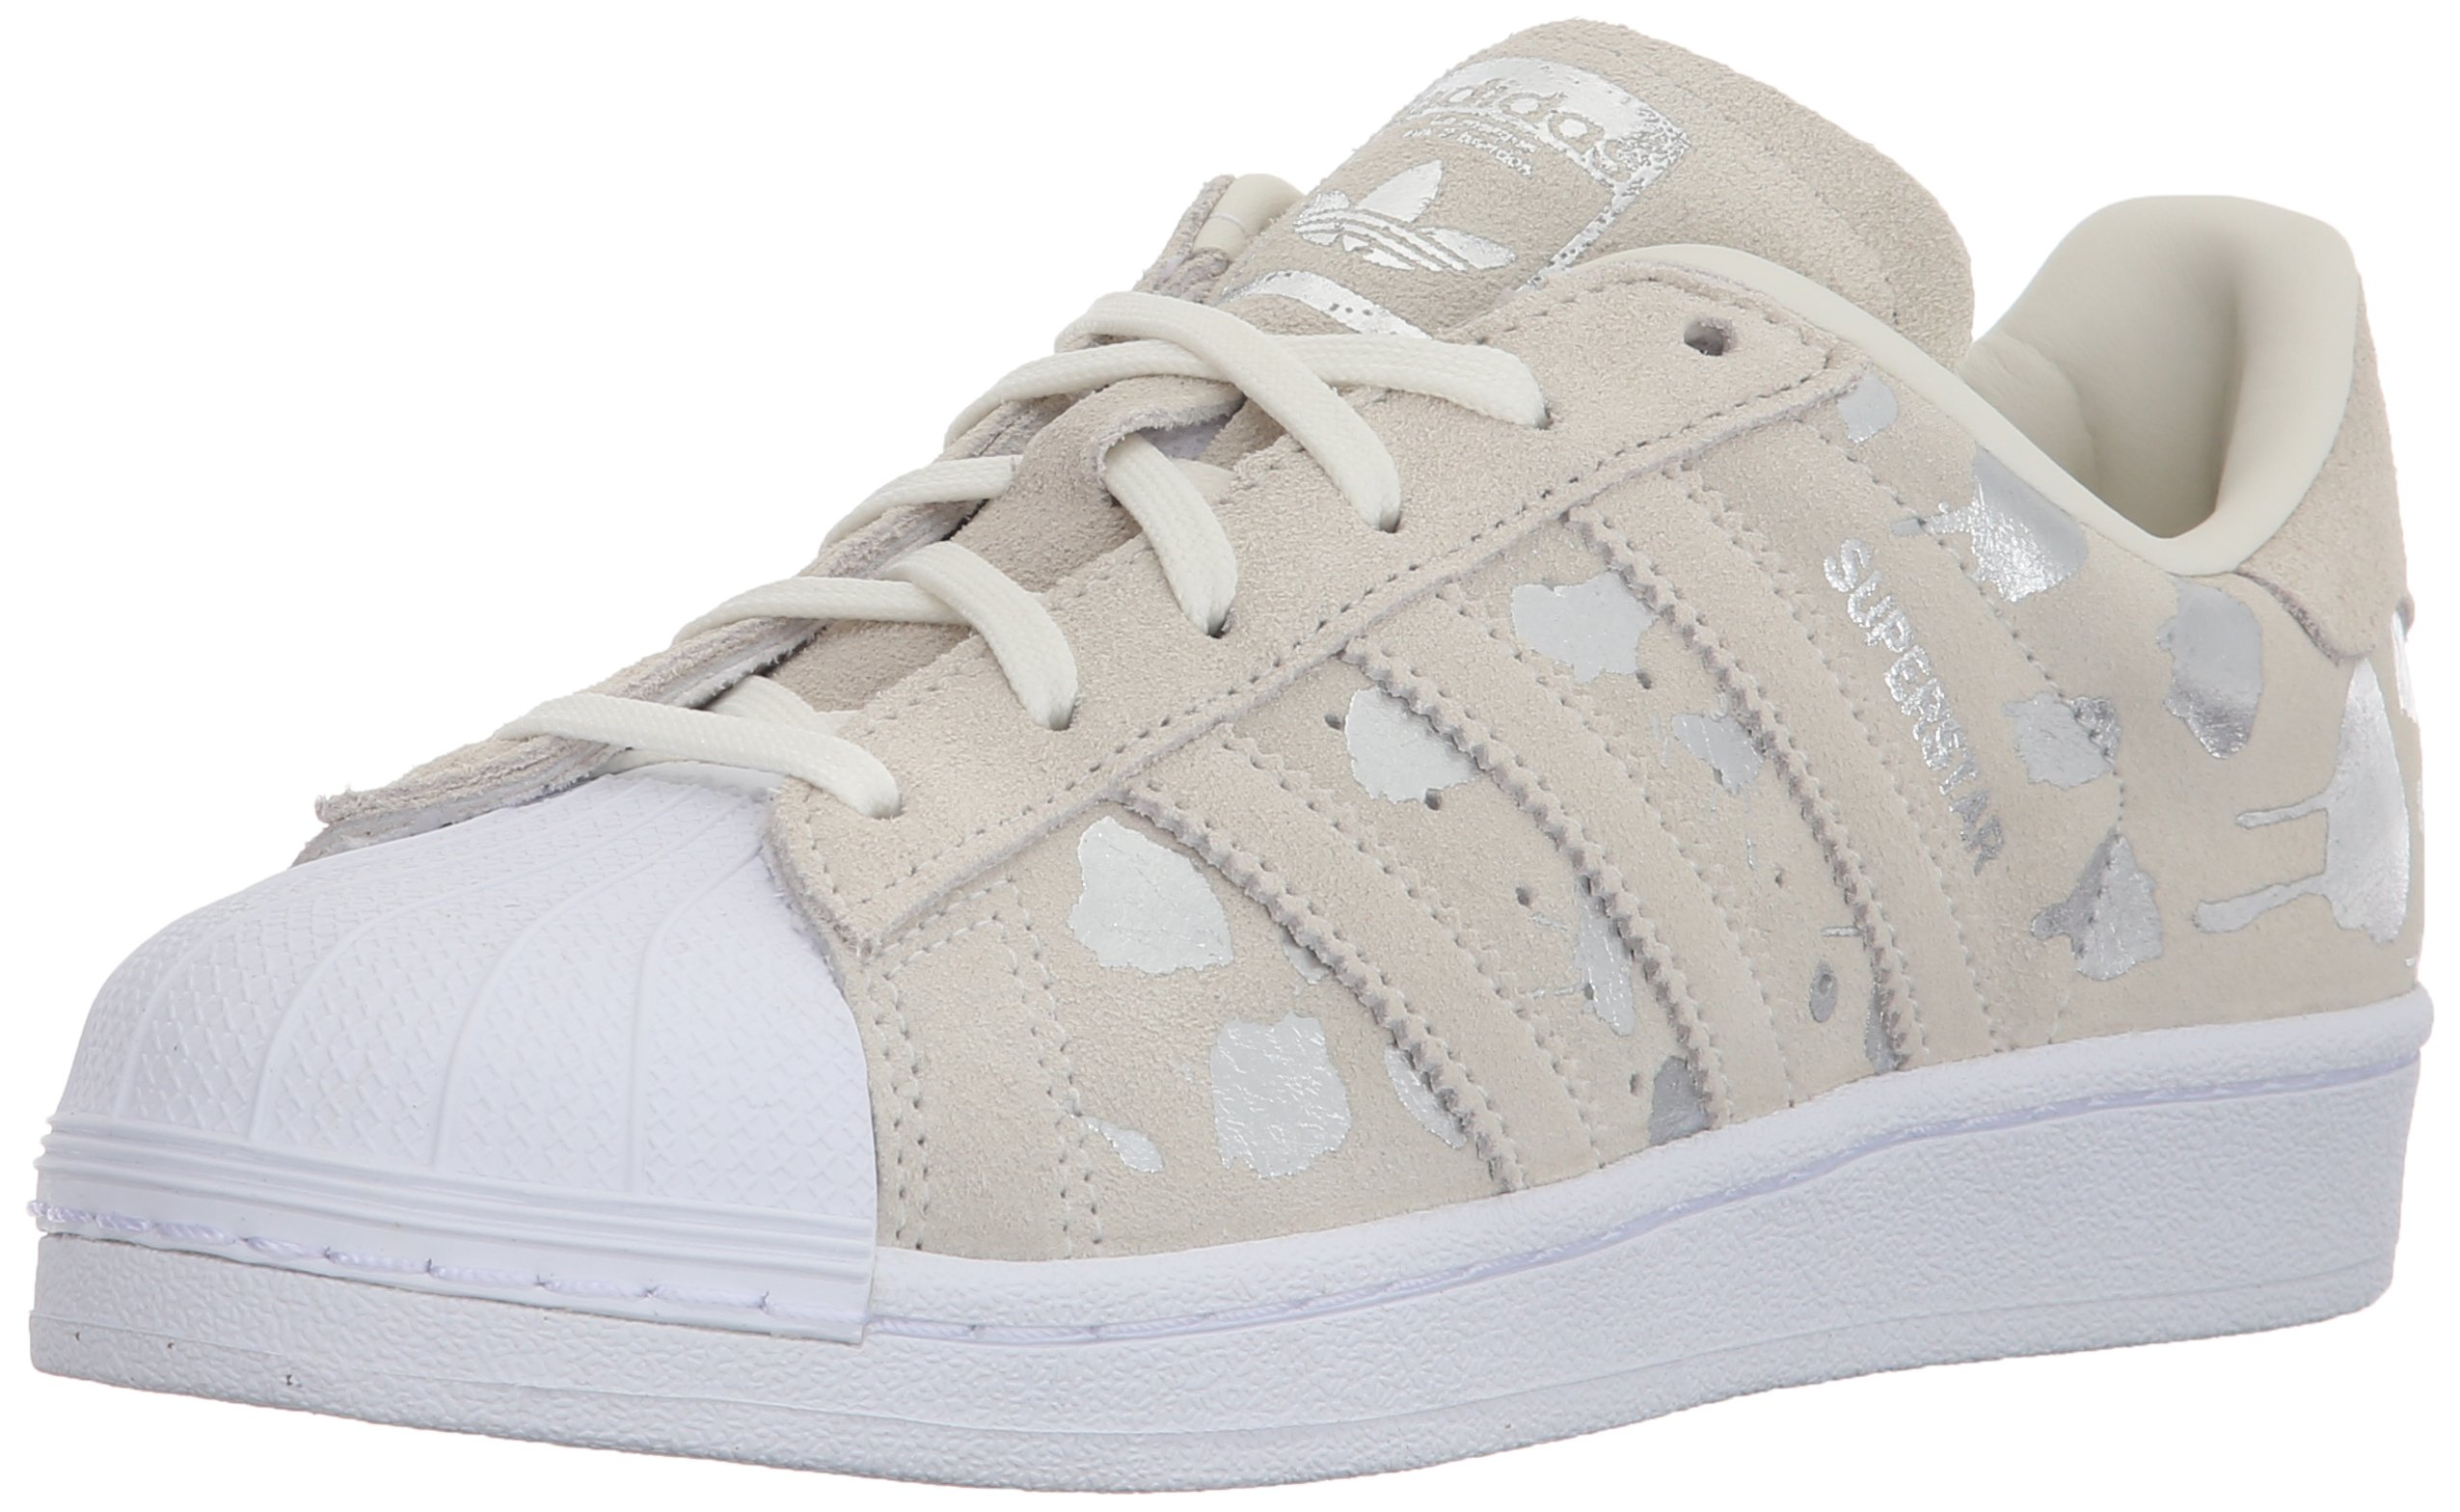 save off 45a83 7dd05 Galleon - Adidas Originals Women s Superstar Shoes Running, Off Off  White Legacy Metallic Silver Solid 6 M US